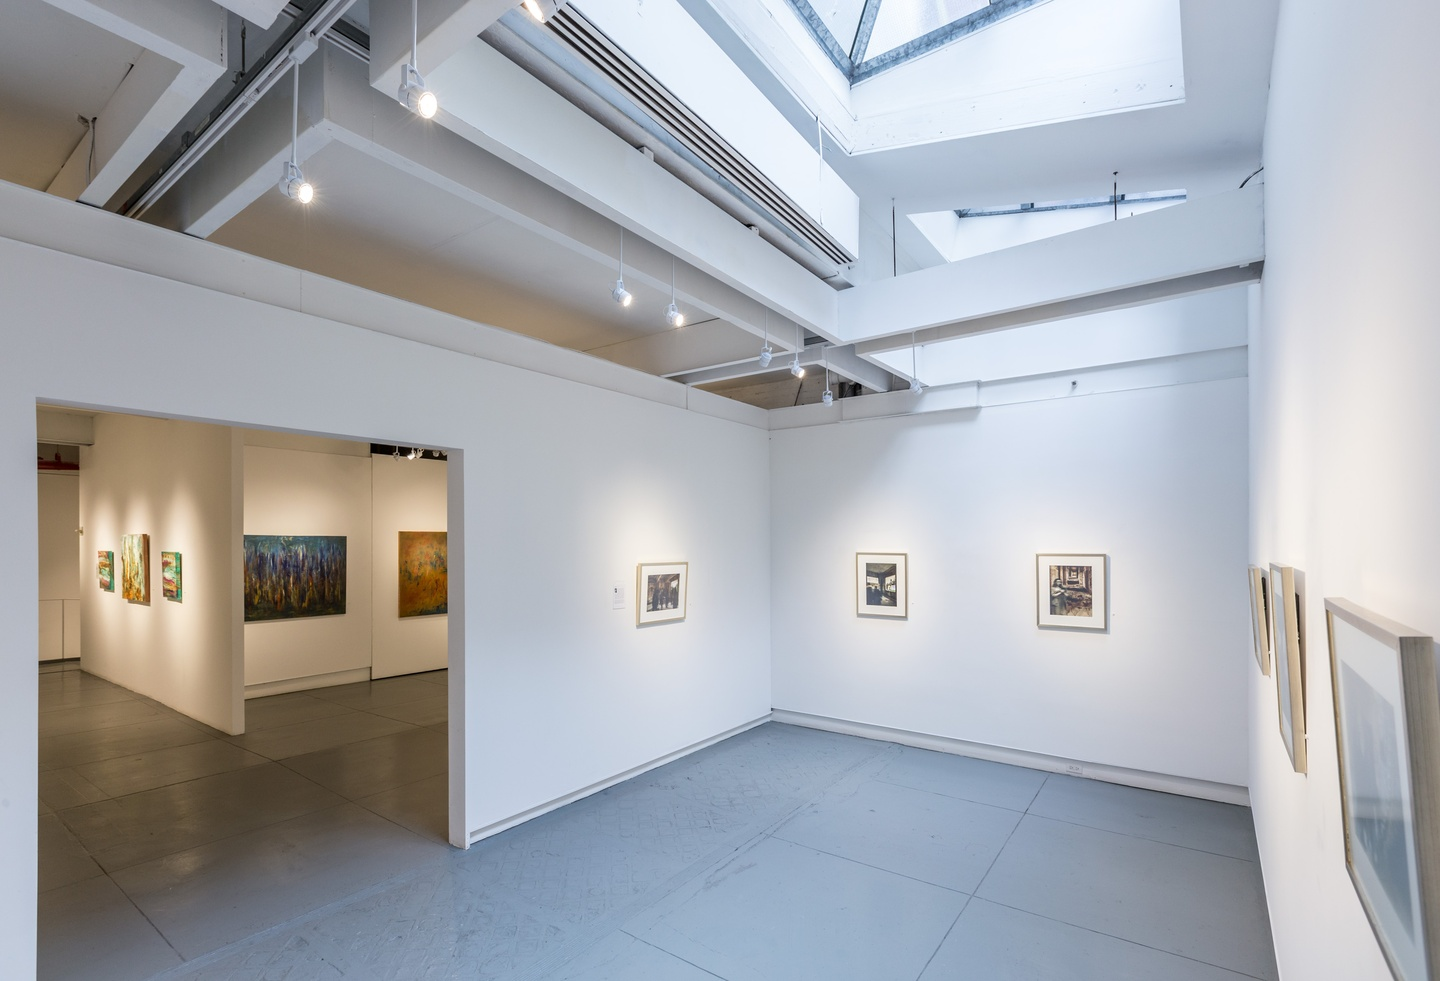 NYC corporate event venues Gallery White Space Chelsea at Agora Gallery image 2